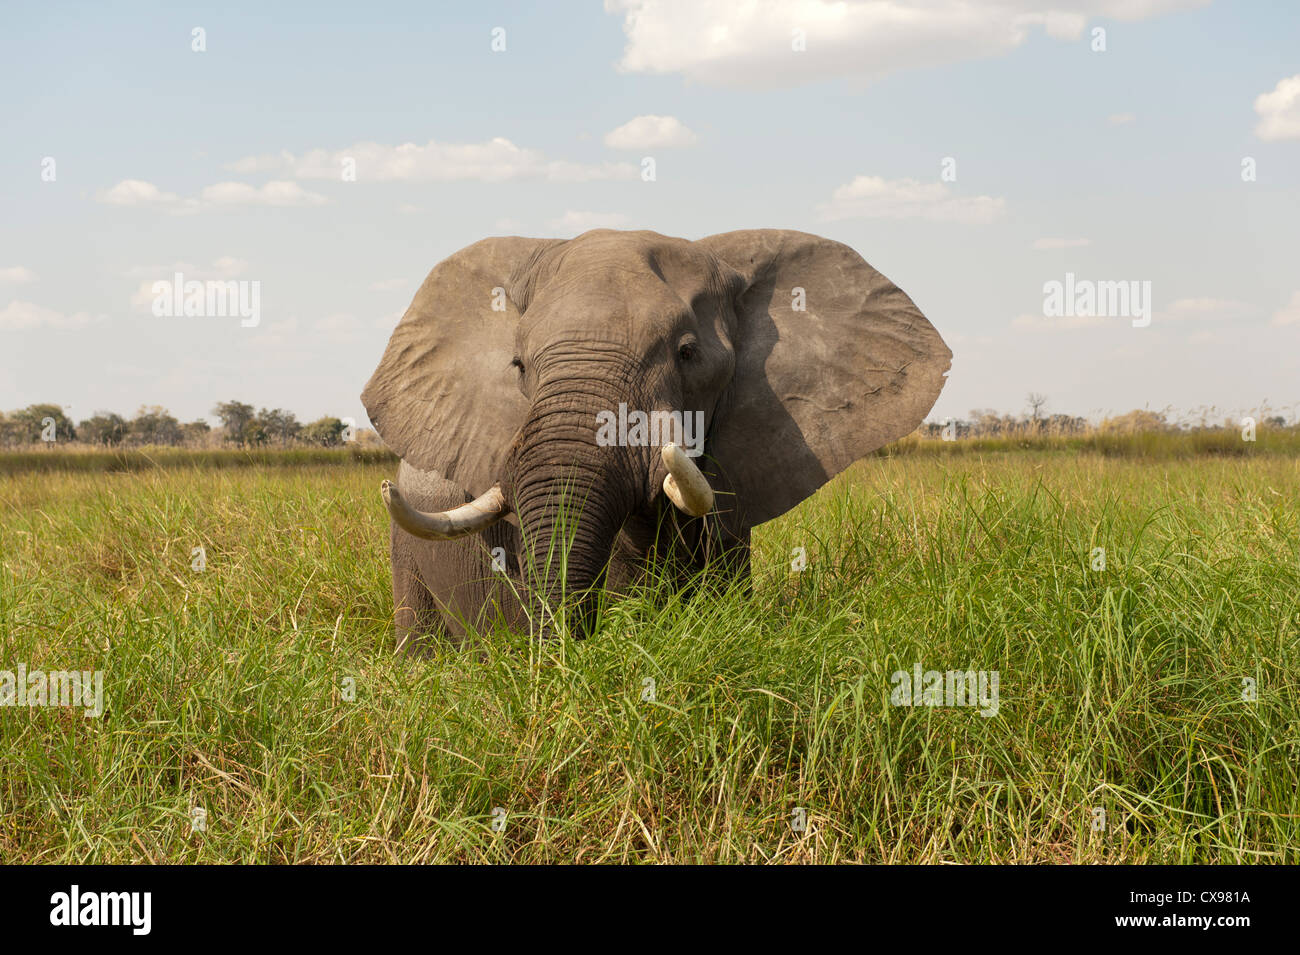 African elephant with tusks in the bush in the Okavonga Delta of Botswana - Stock Image